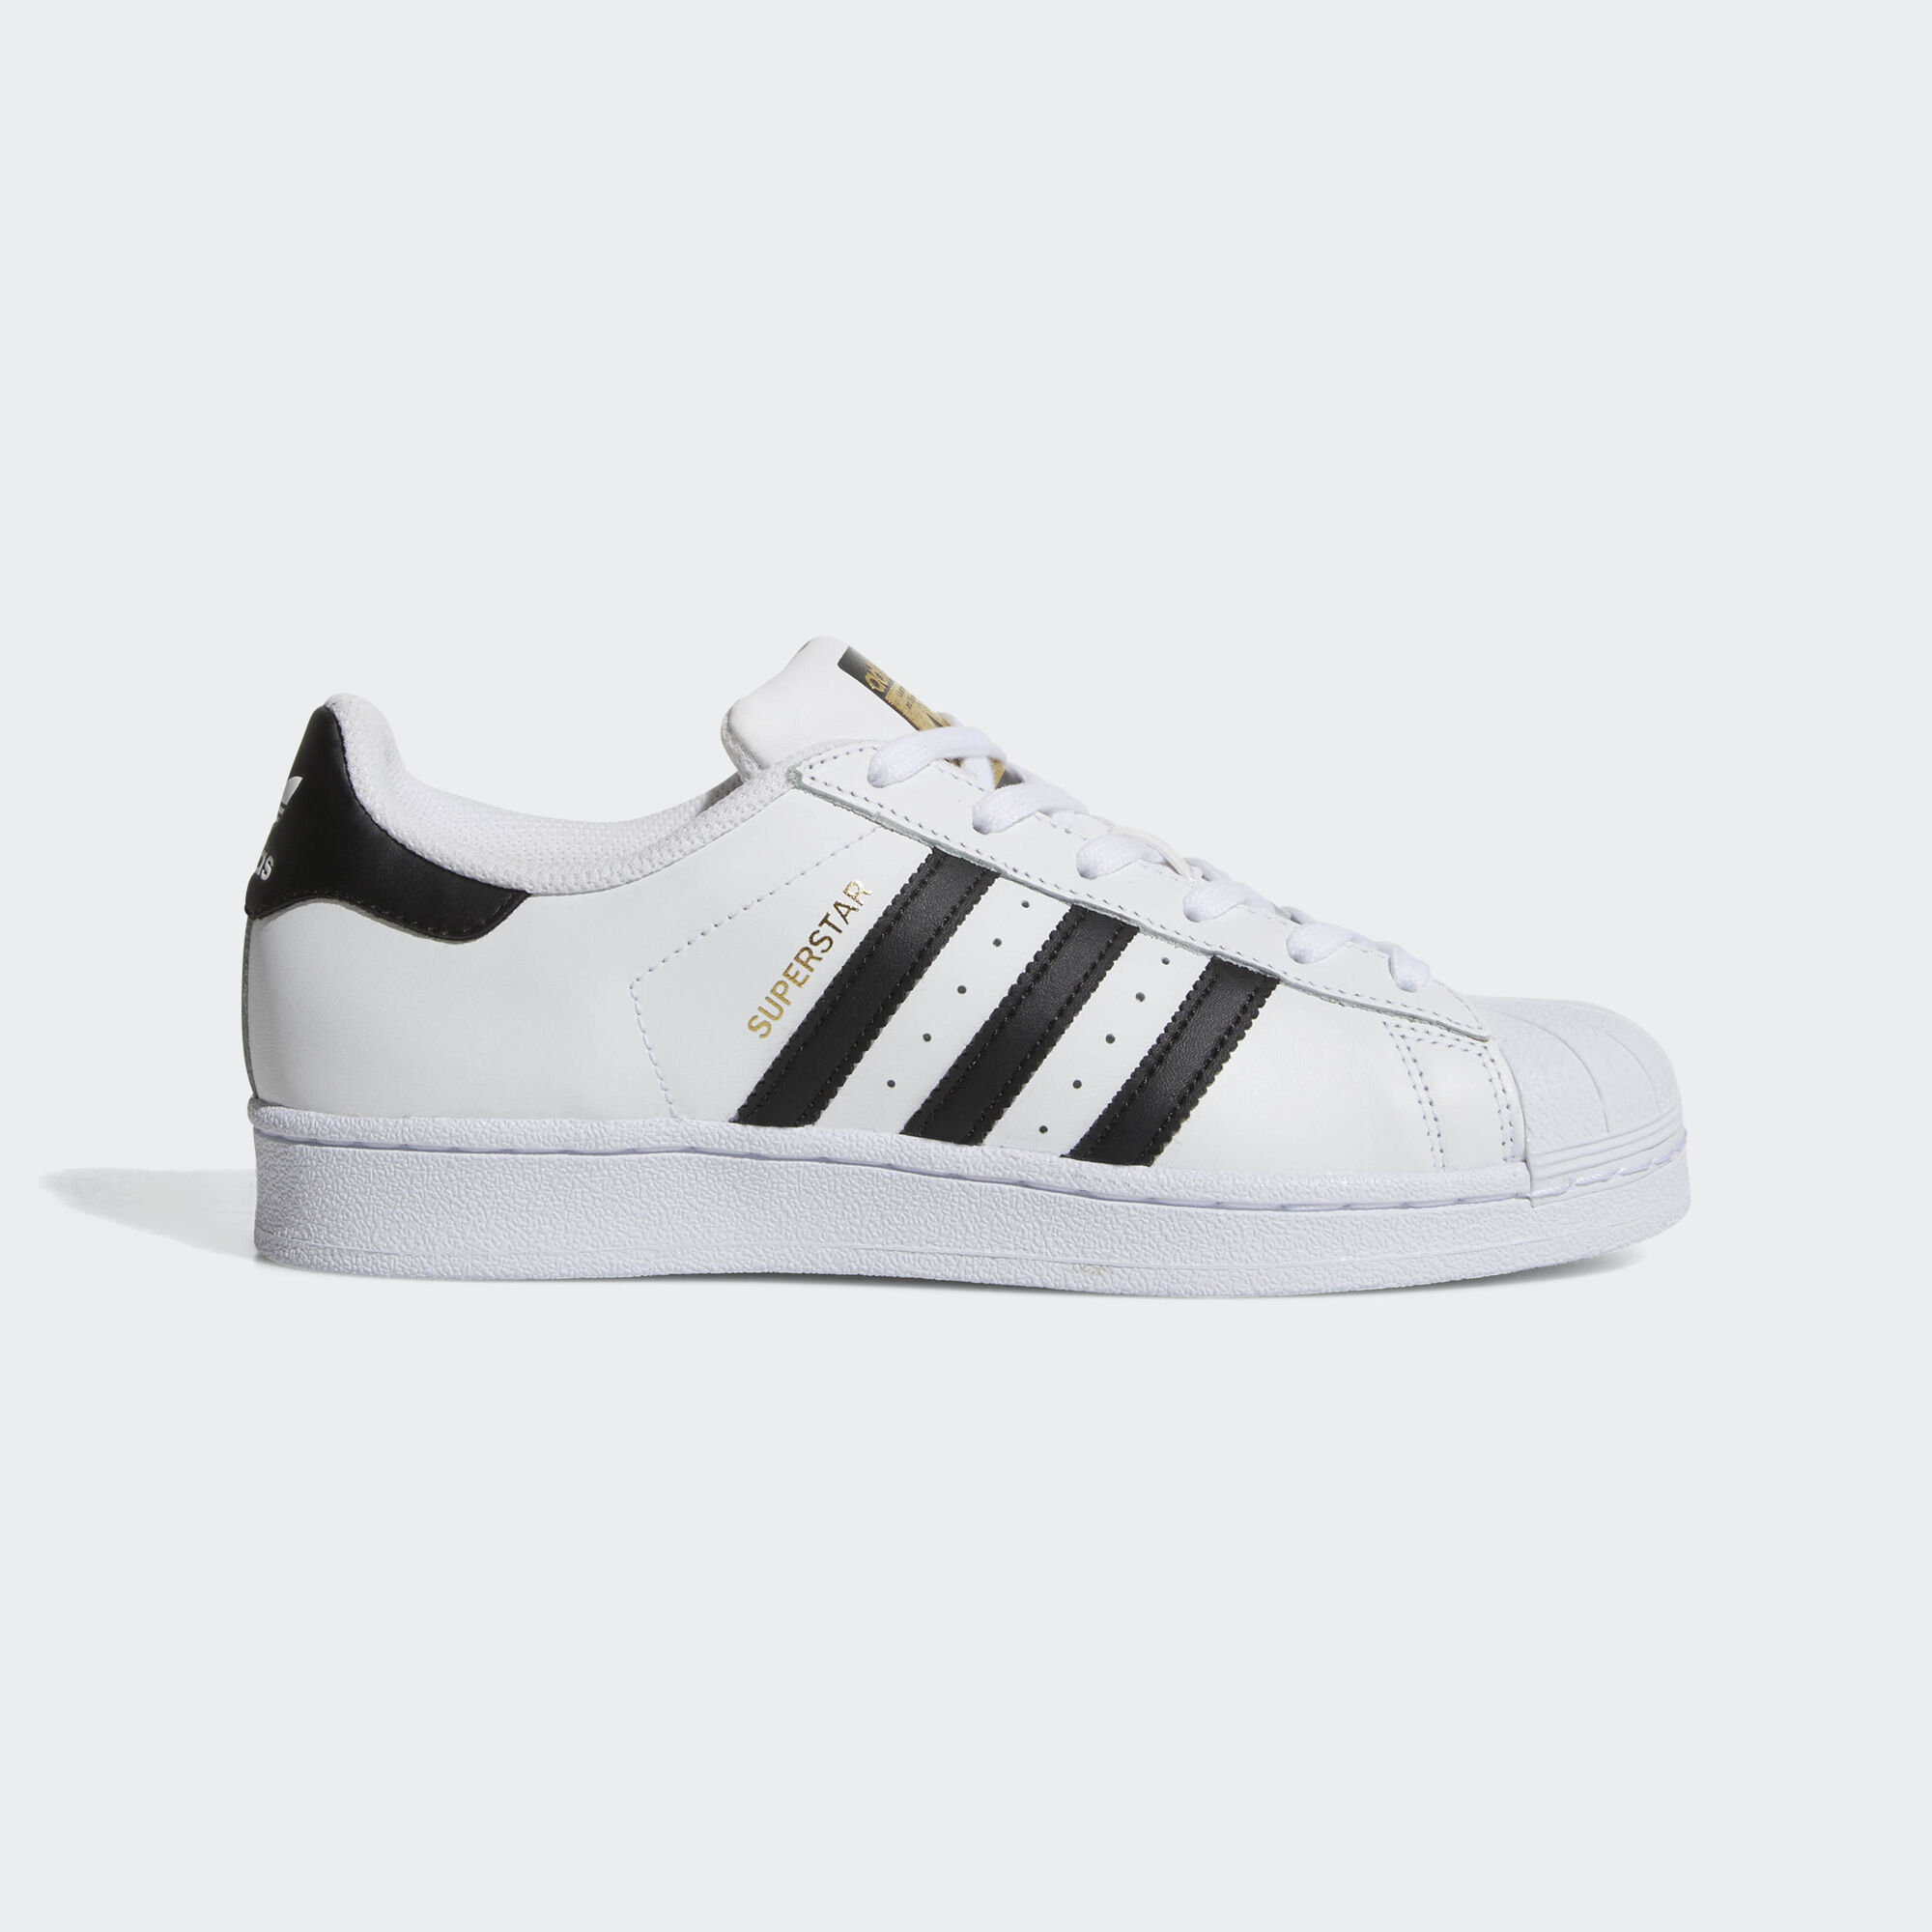 new product efe0f fbaa0 ... adidas neo leather gold red adidas womens superstar shoes white core  black c77153 ...